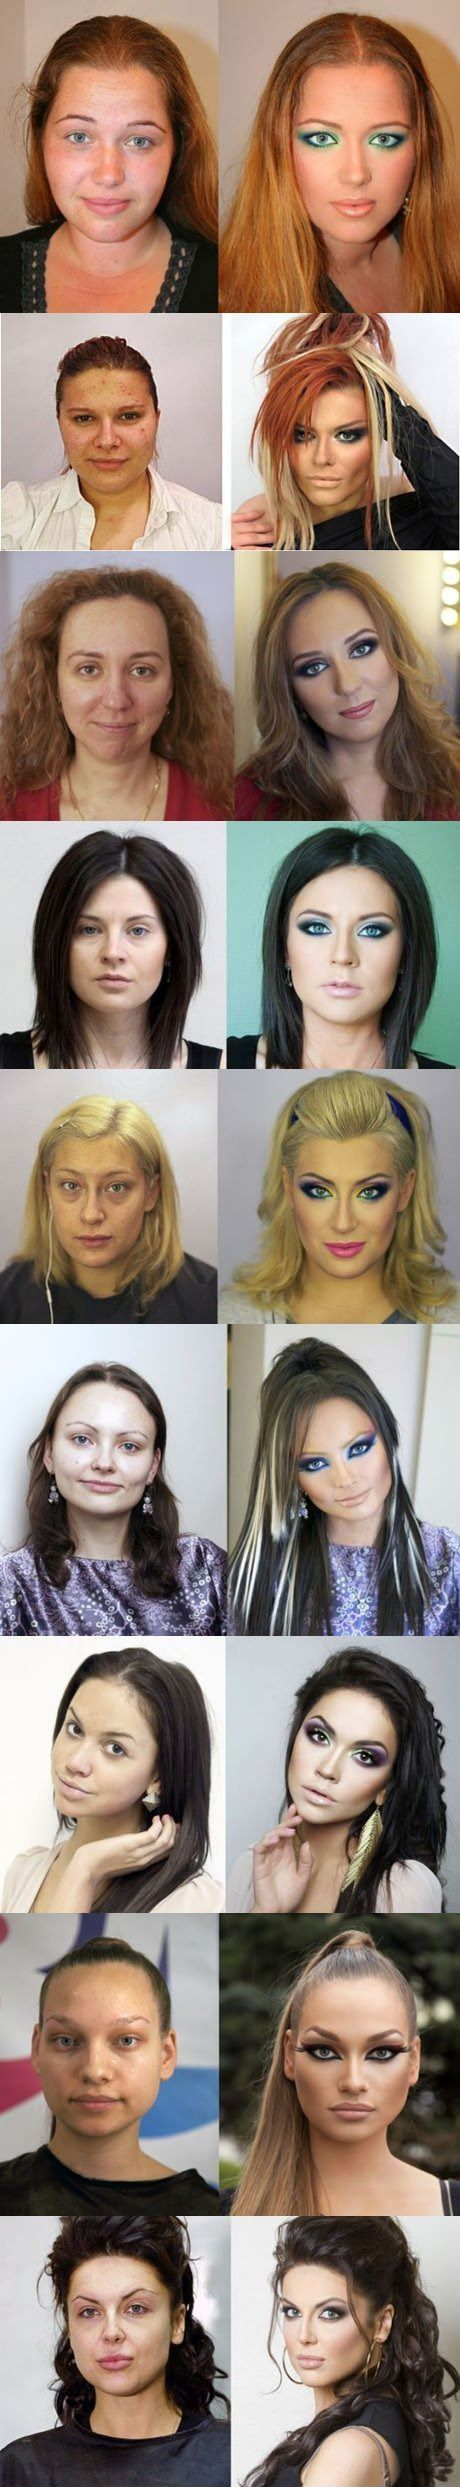 Before and after. Russian makeup artist Vadim Andreev.